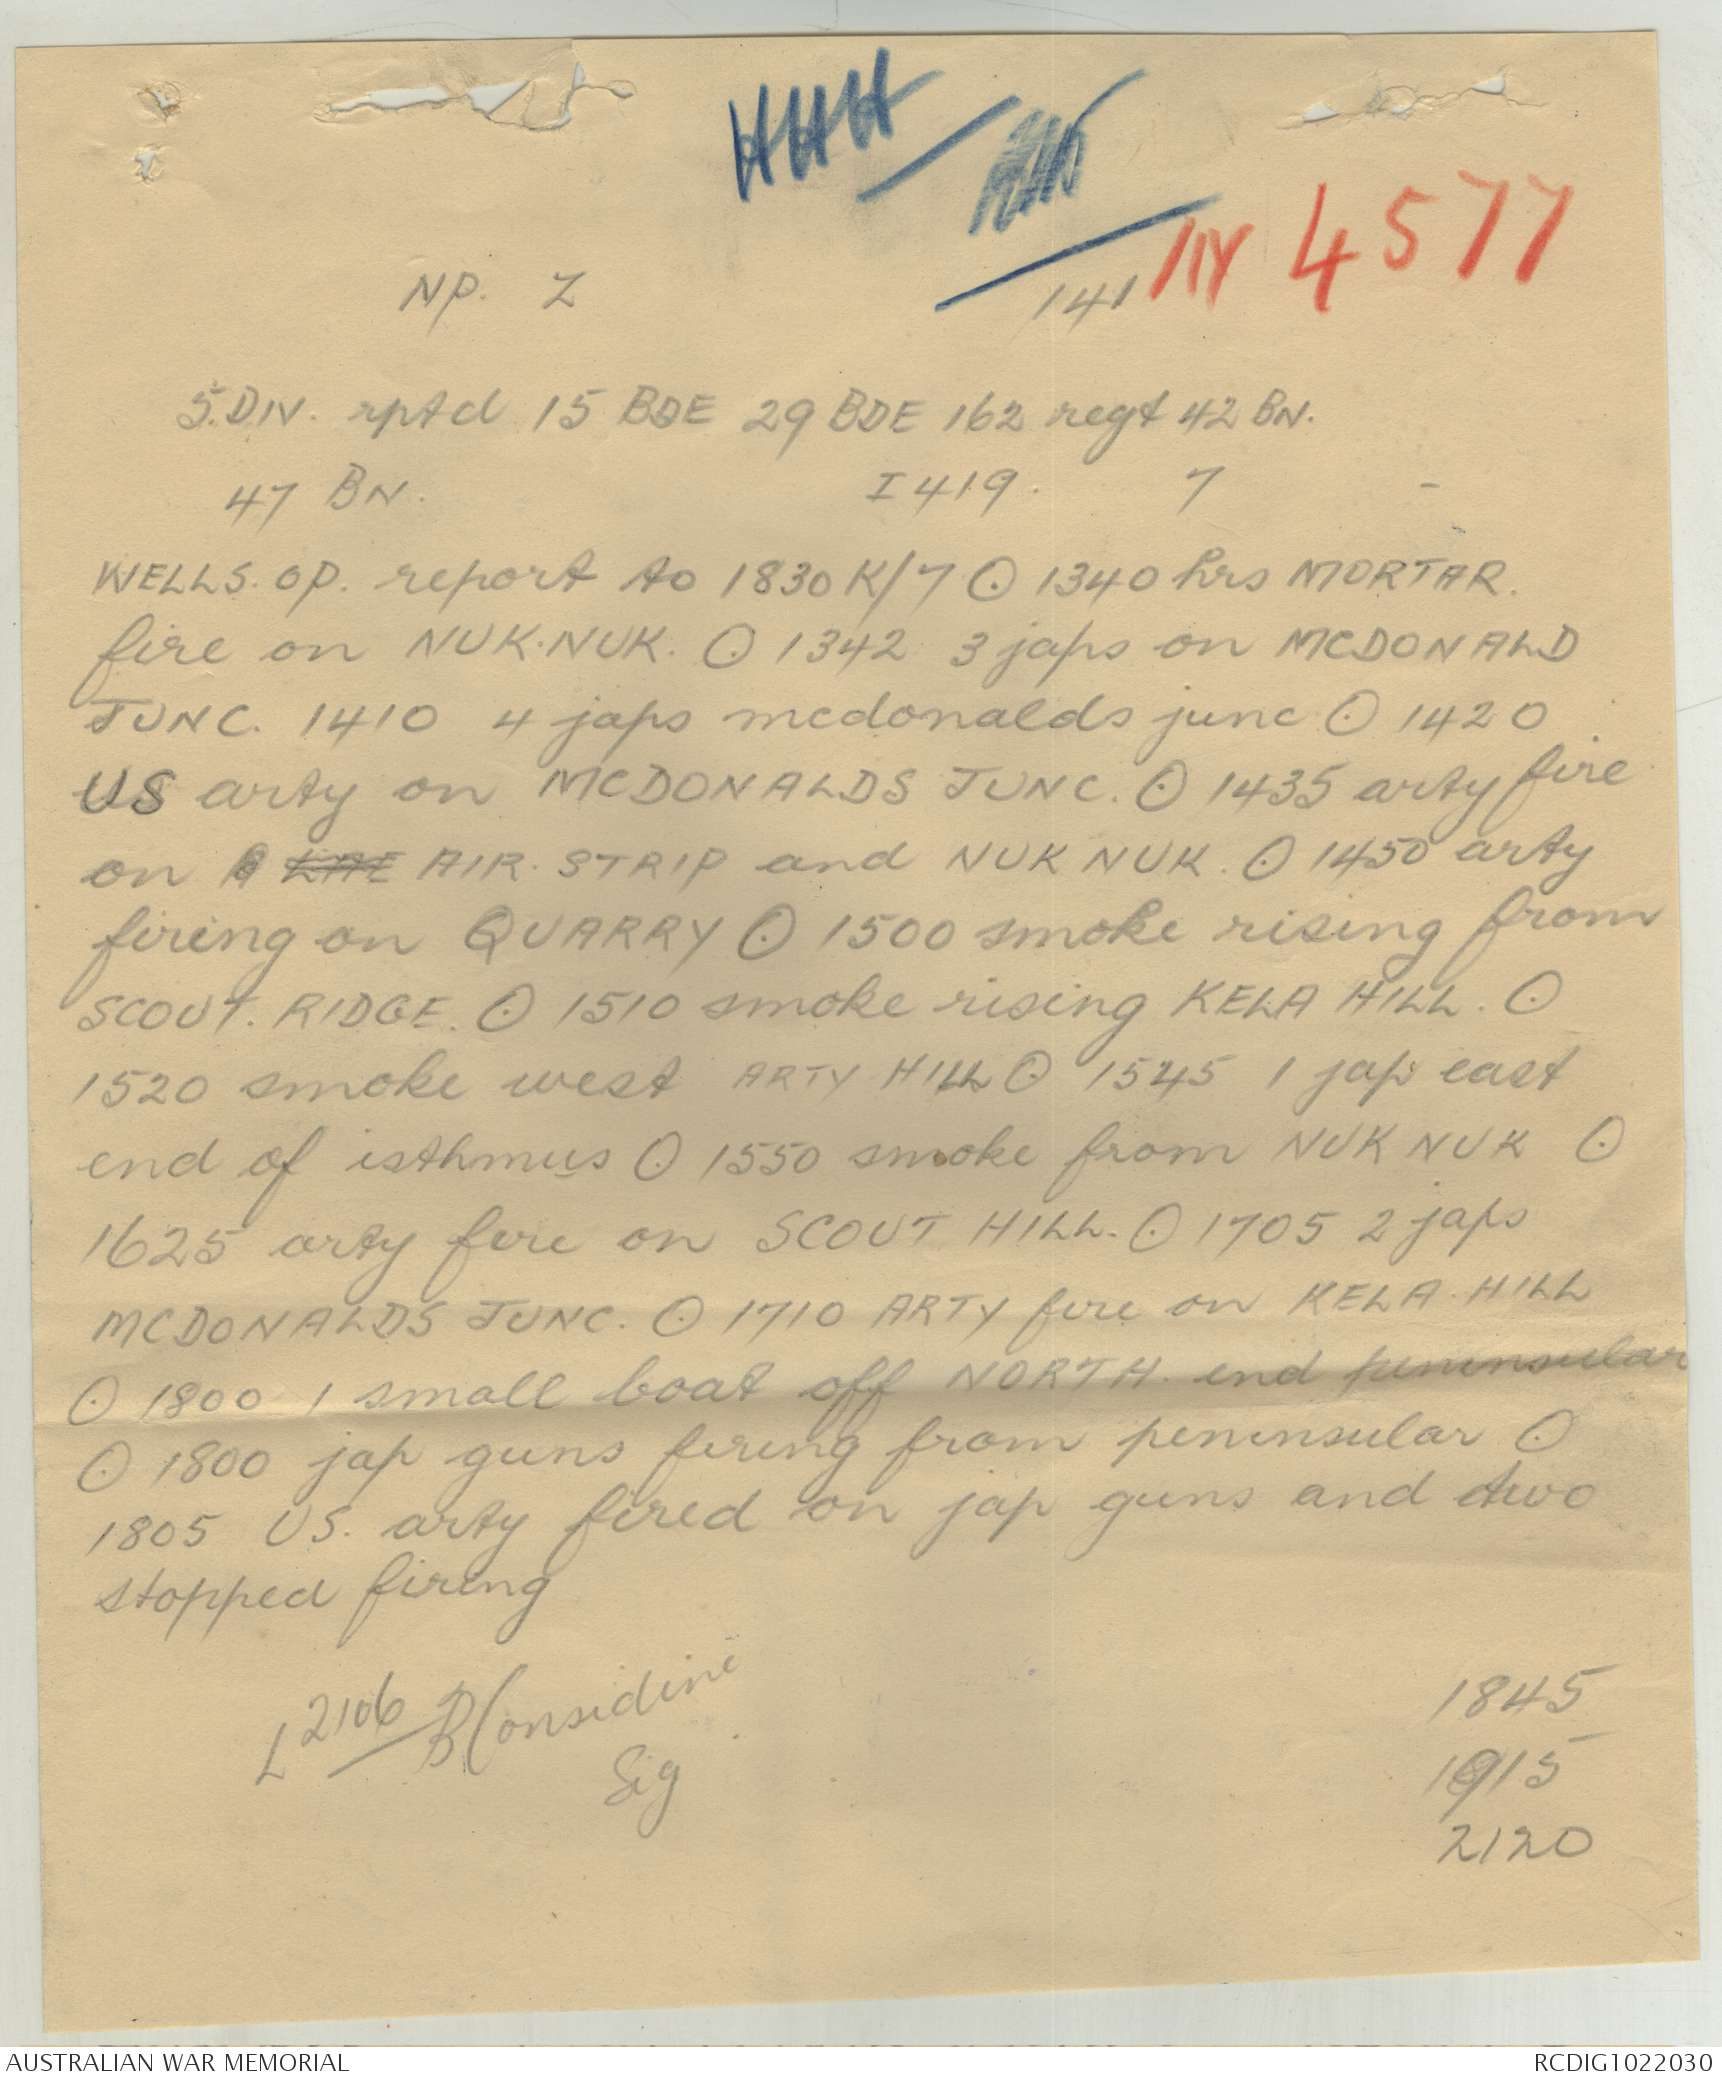 AWM52 8/2/15/43 - September 1943, Messages, part 3 of 10